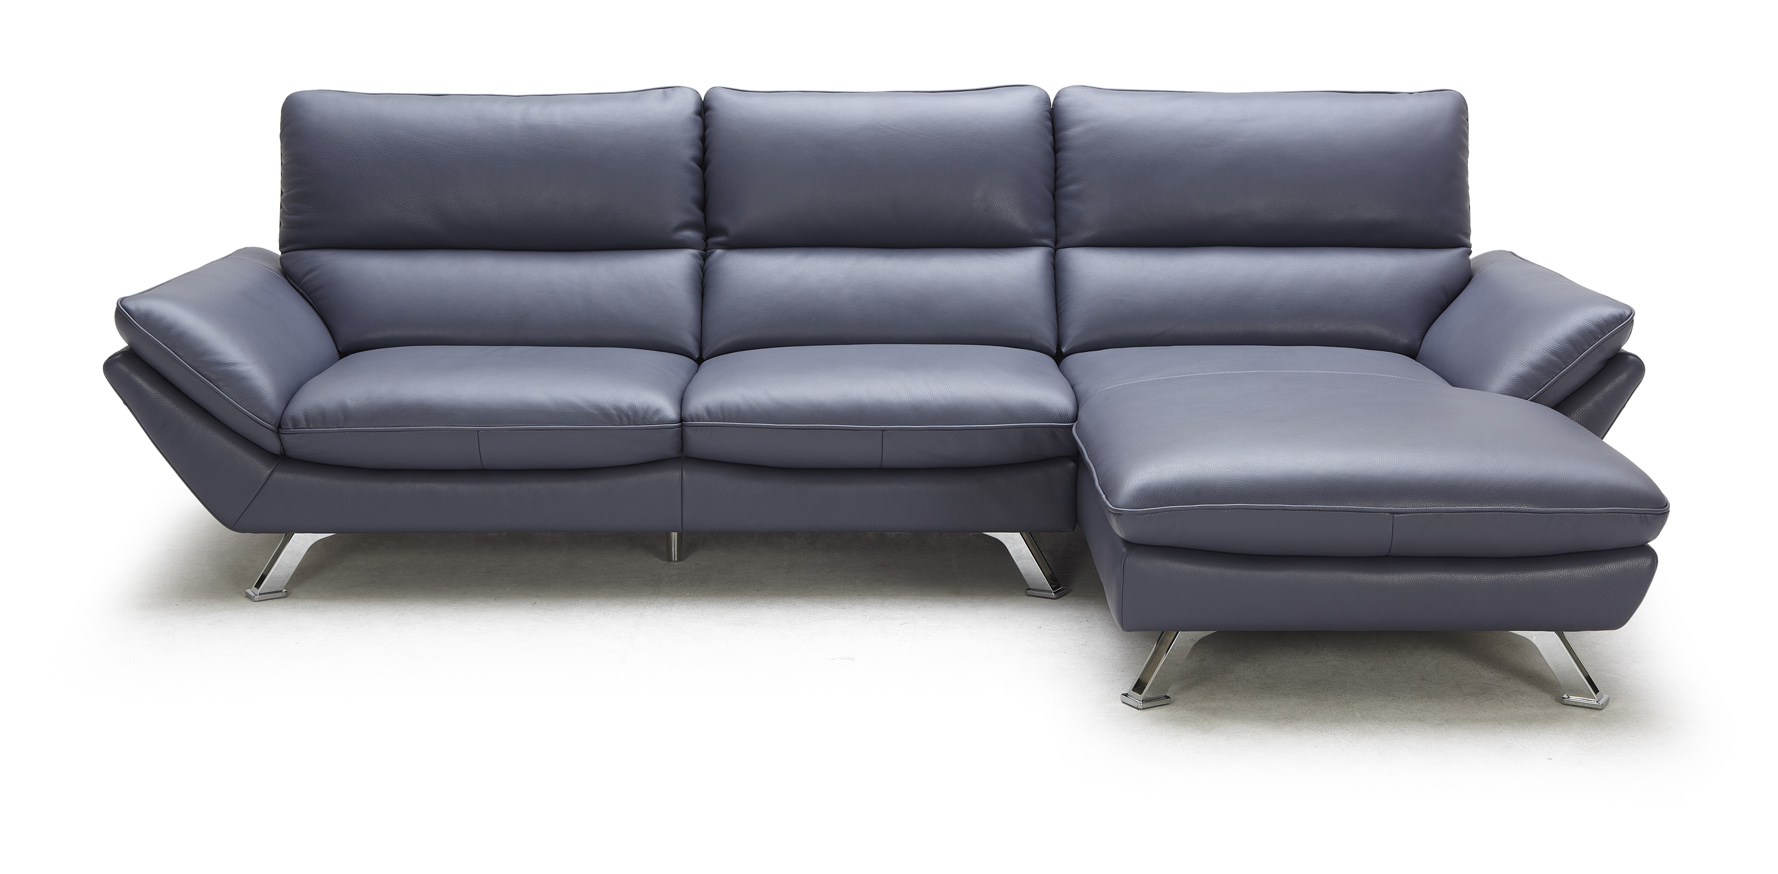 Blue Leather Sectional Sofa Hereo Sofa